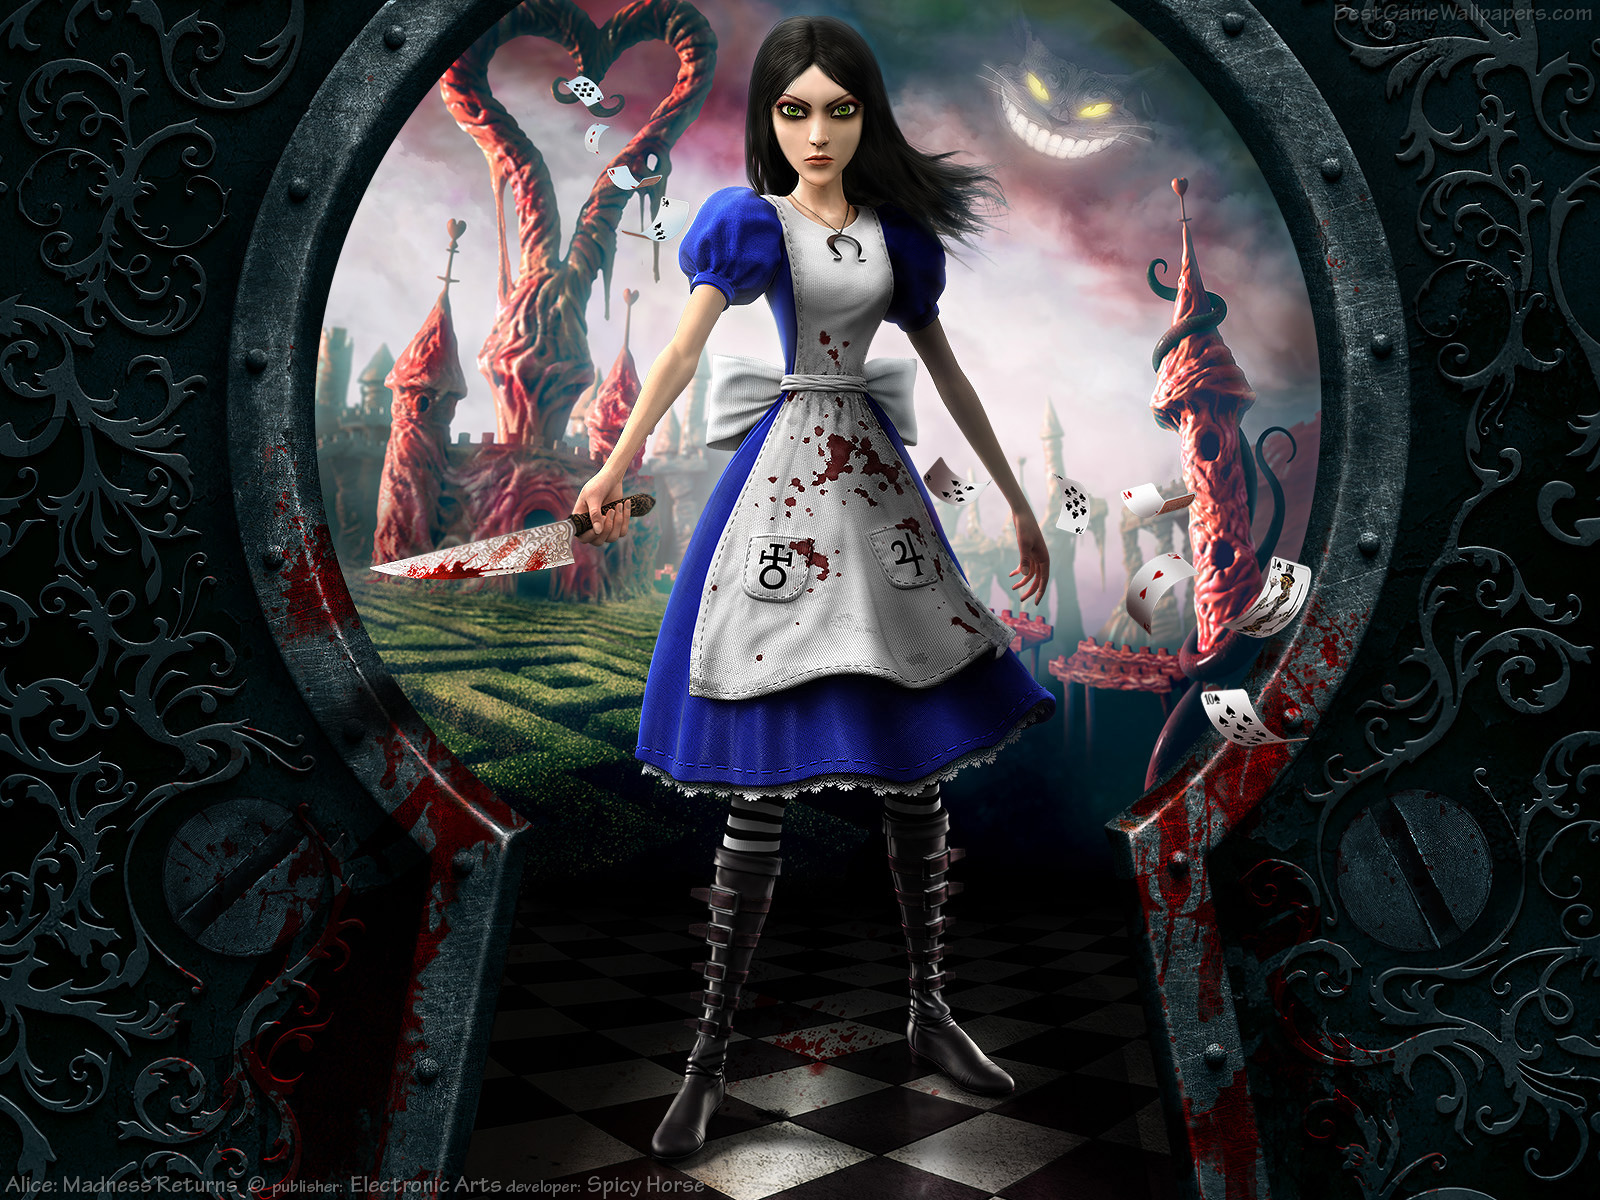 A few months ago, I started, played through and finished Alice Madness Returns, totally skipping the first part of the story that came out on pc years ago.